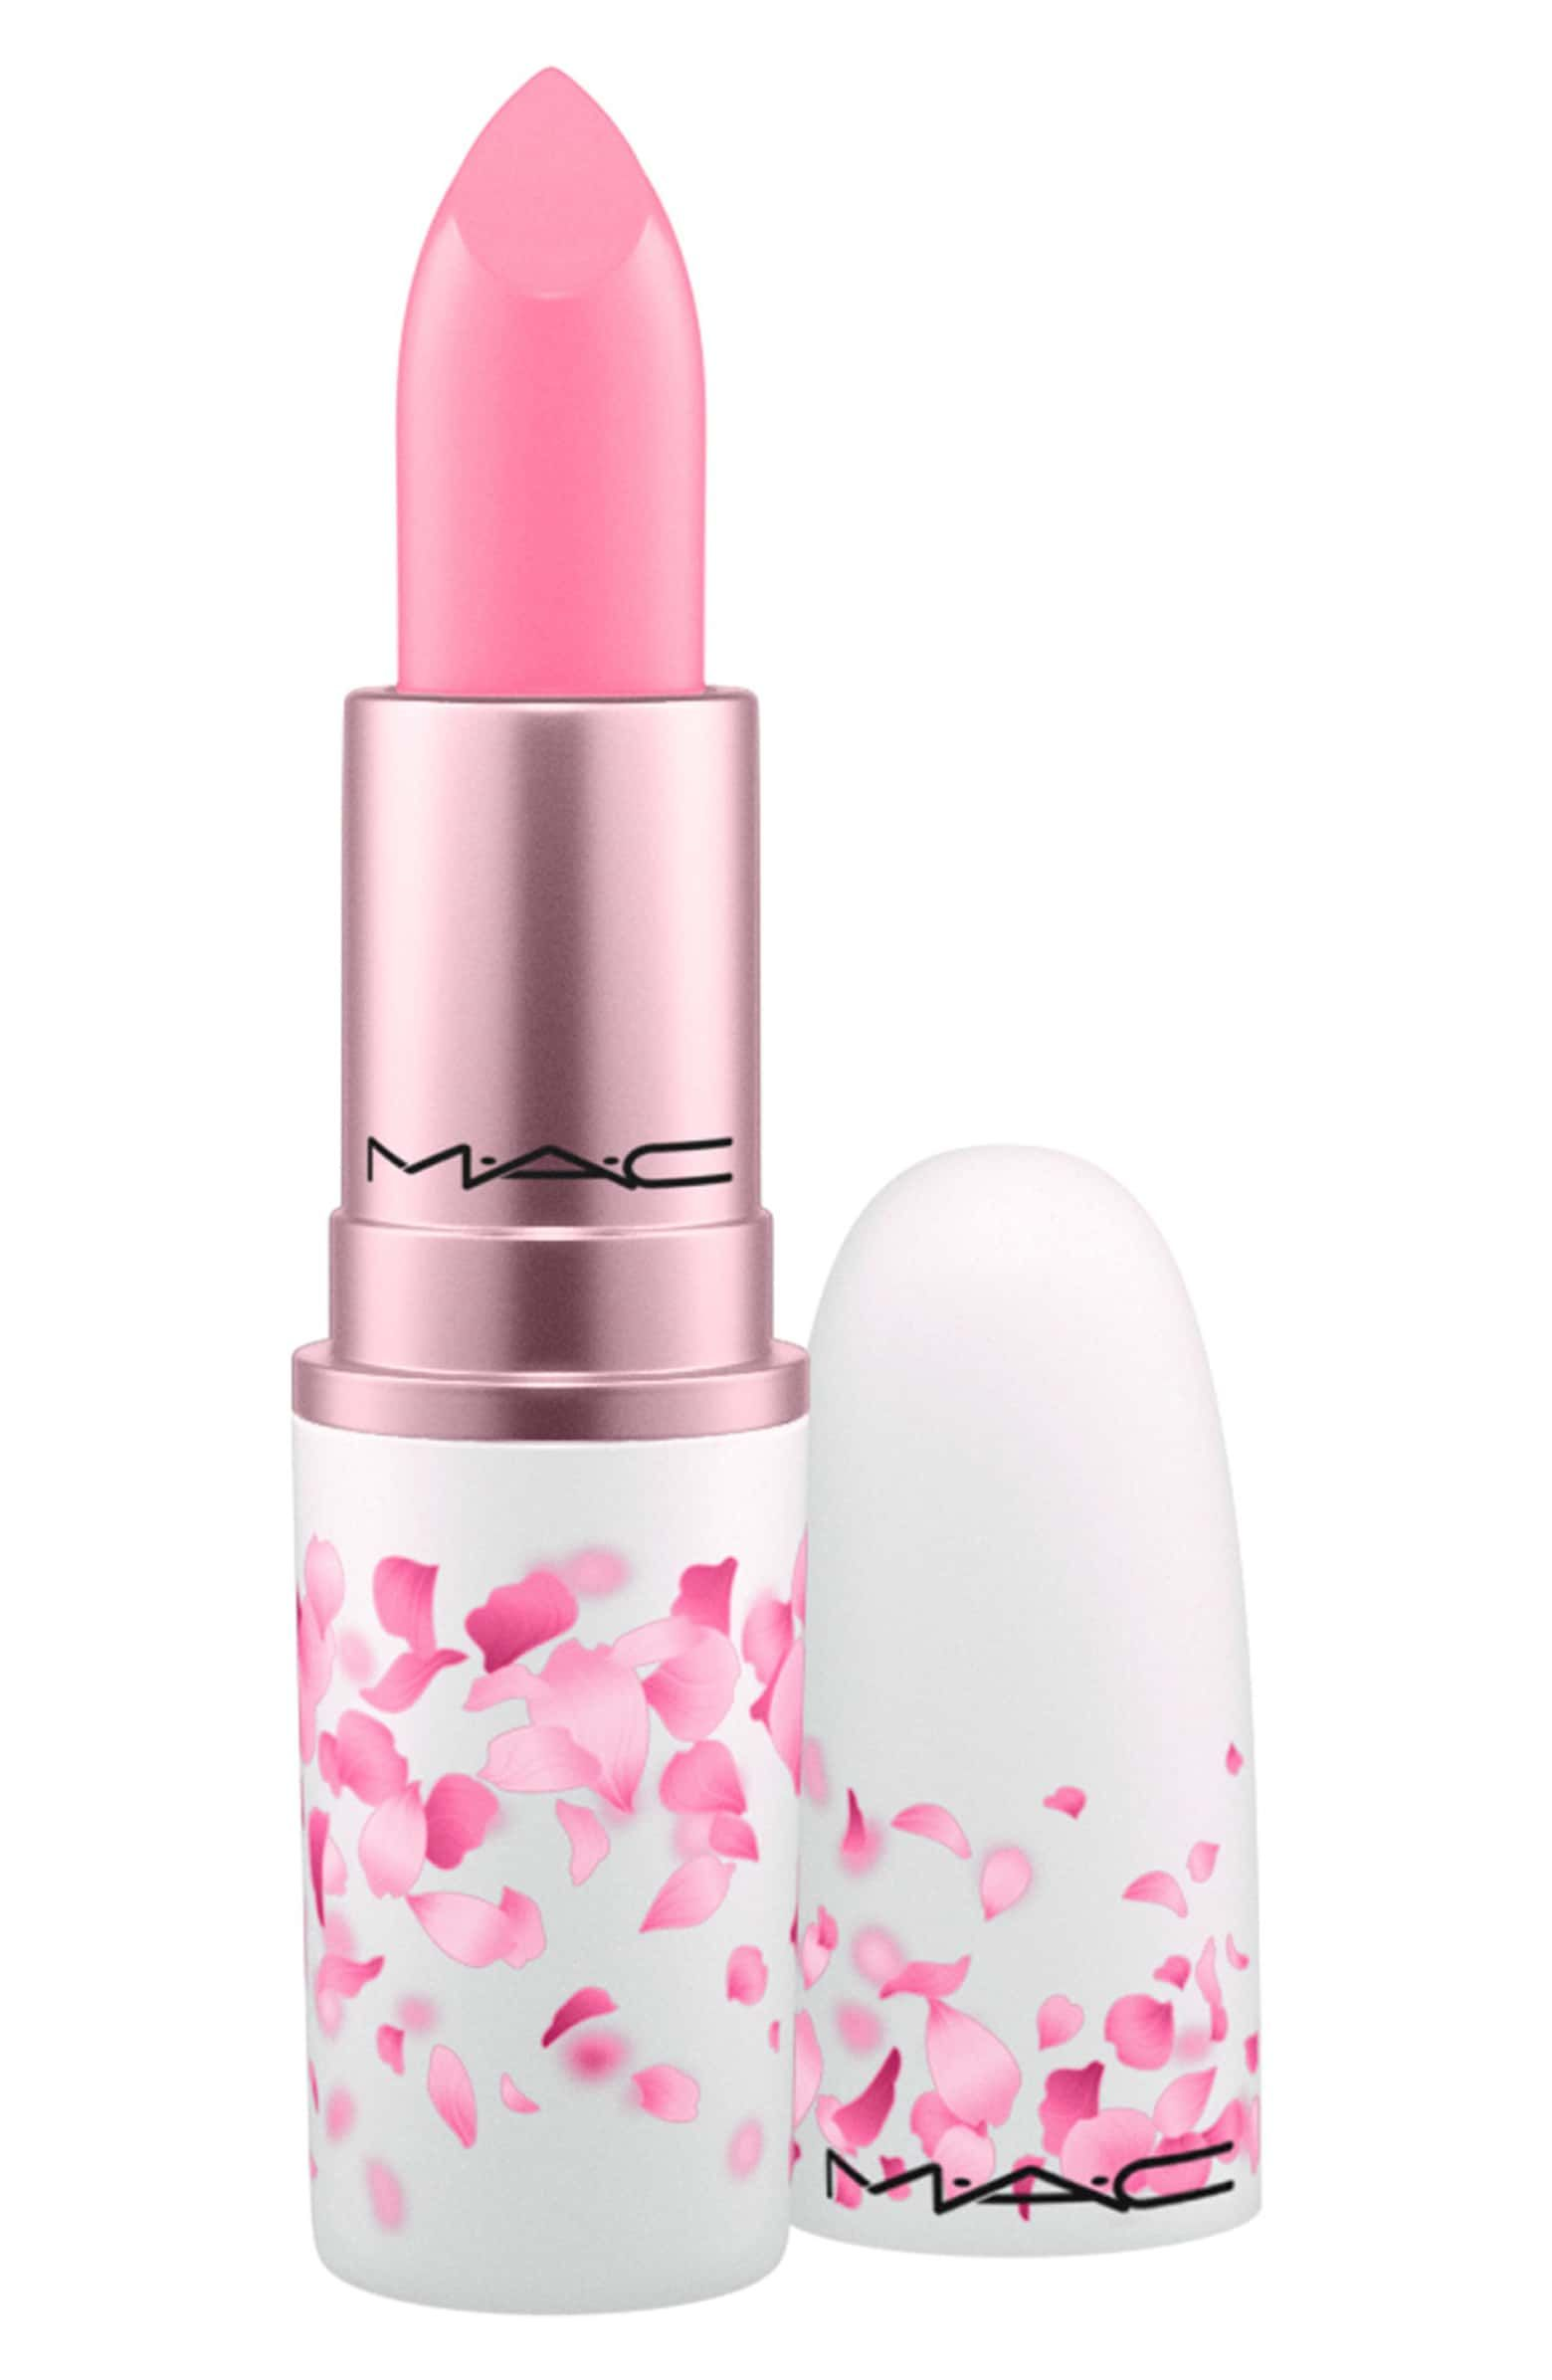 Pastel Pink MAC Boom, Boom, Bloom Lipstick in Hey Kiss Me, $20 SHOP IT It feels on-theme to own a lipstick that matches the spring flowers blooming outside. This pastel pink shade accompanied by this flower-adorned bullet will be the prettiest thing on your vanity.